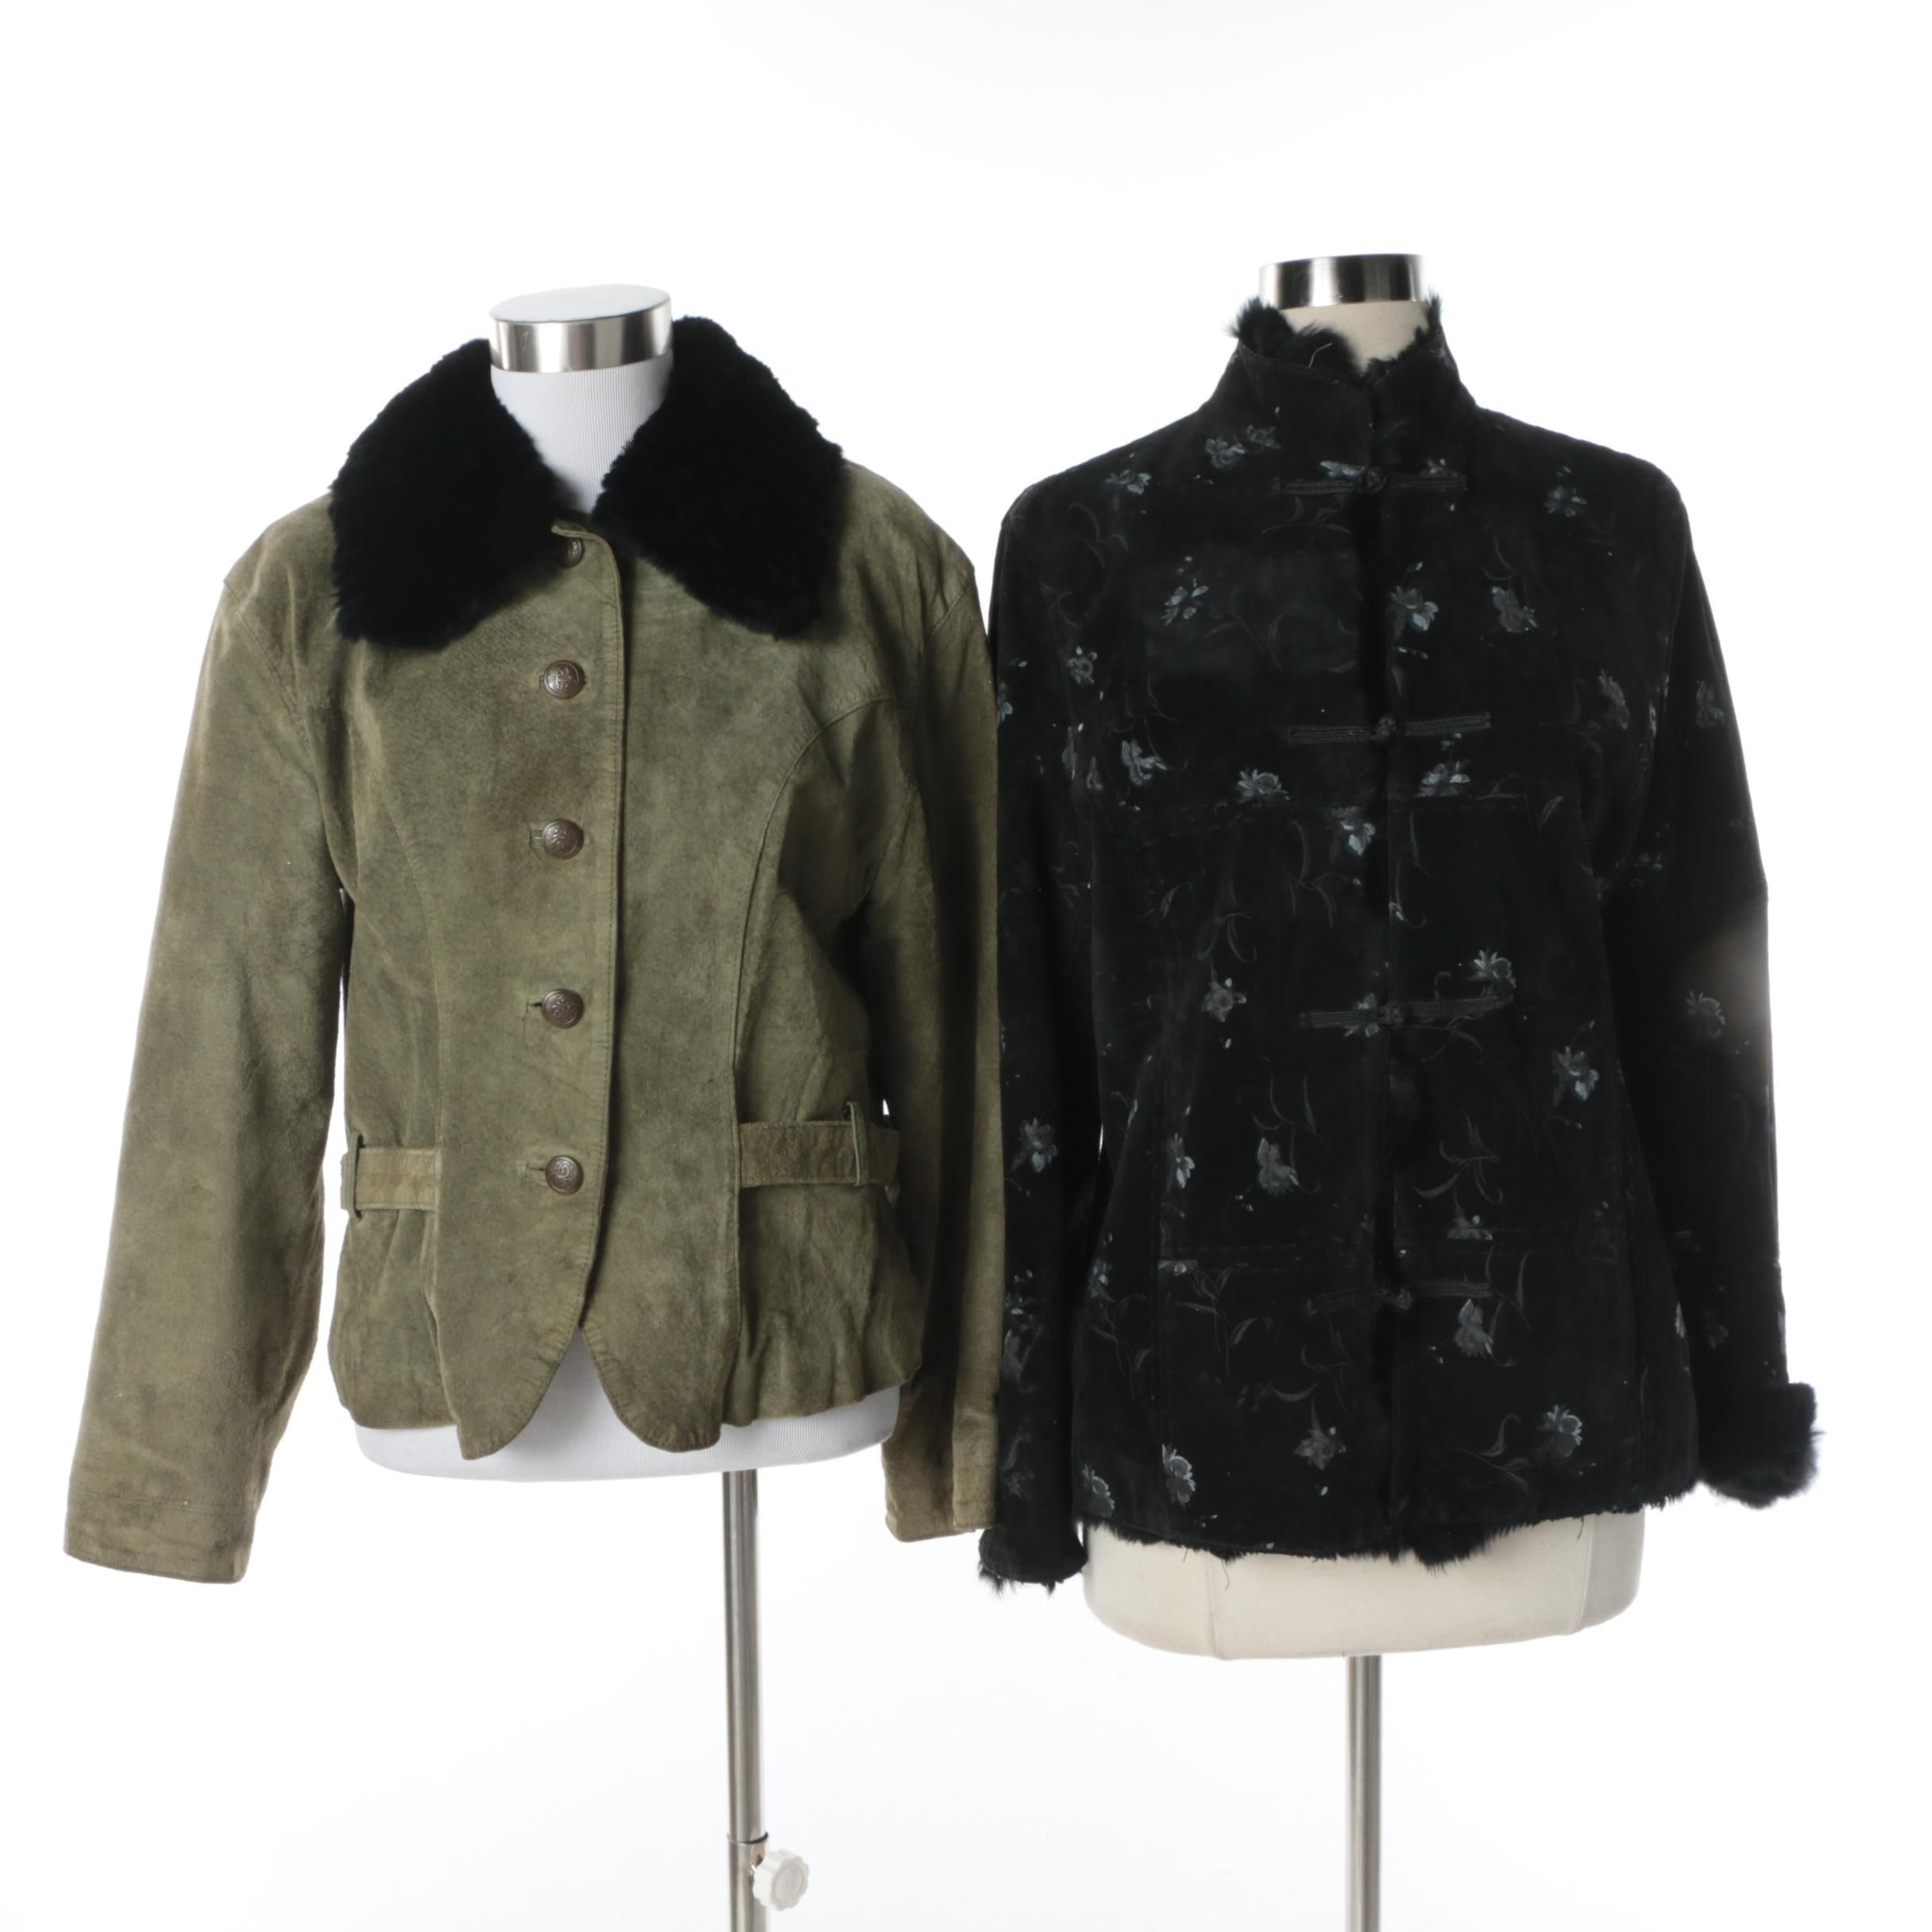 Women's Cabo and Atelier Sab Suede Jackets with Dyed Rabbit Fur